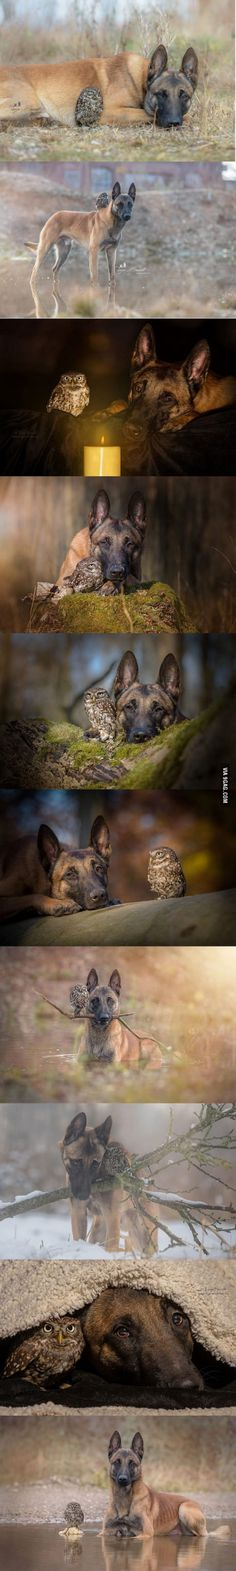 This Unlikely Friendship Between A Dog And An Owl Is Beautiful